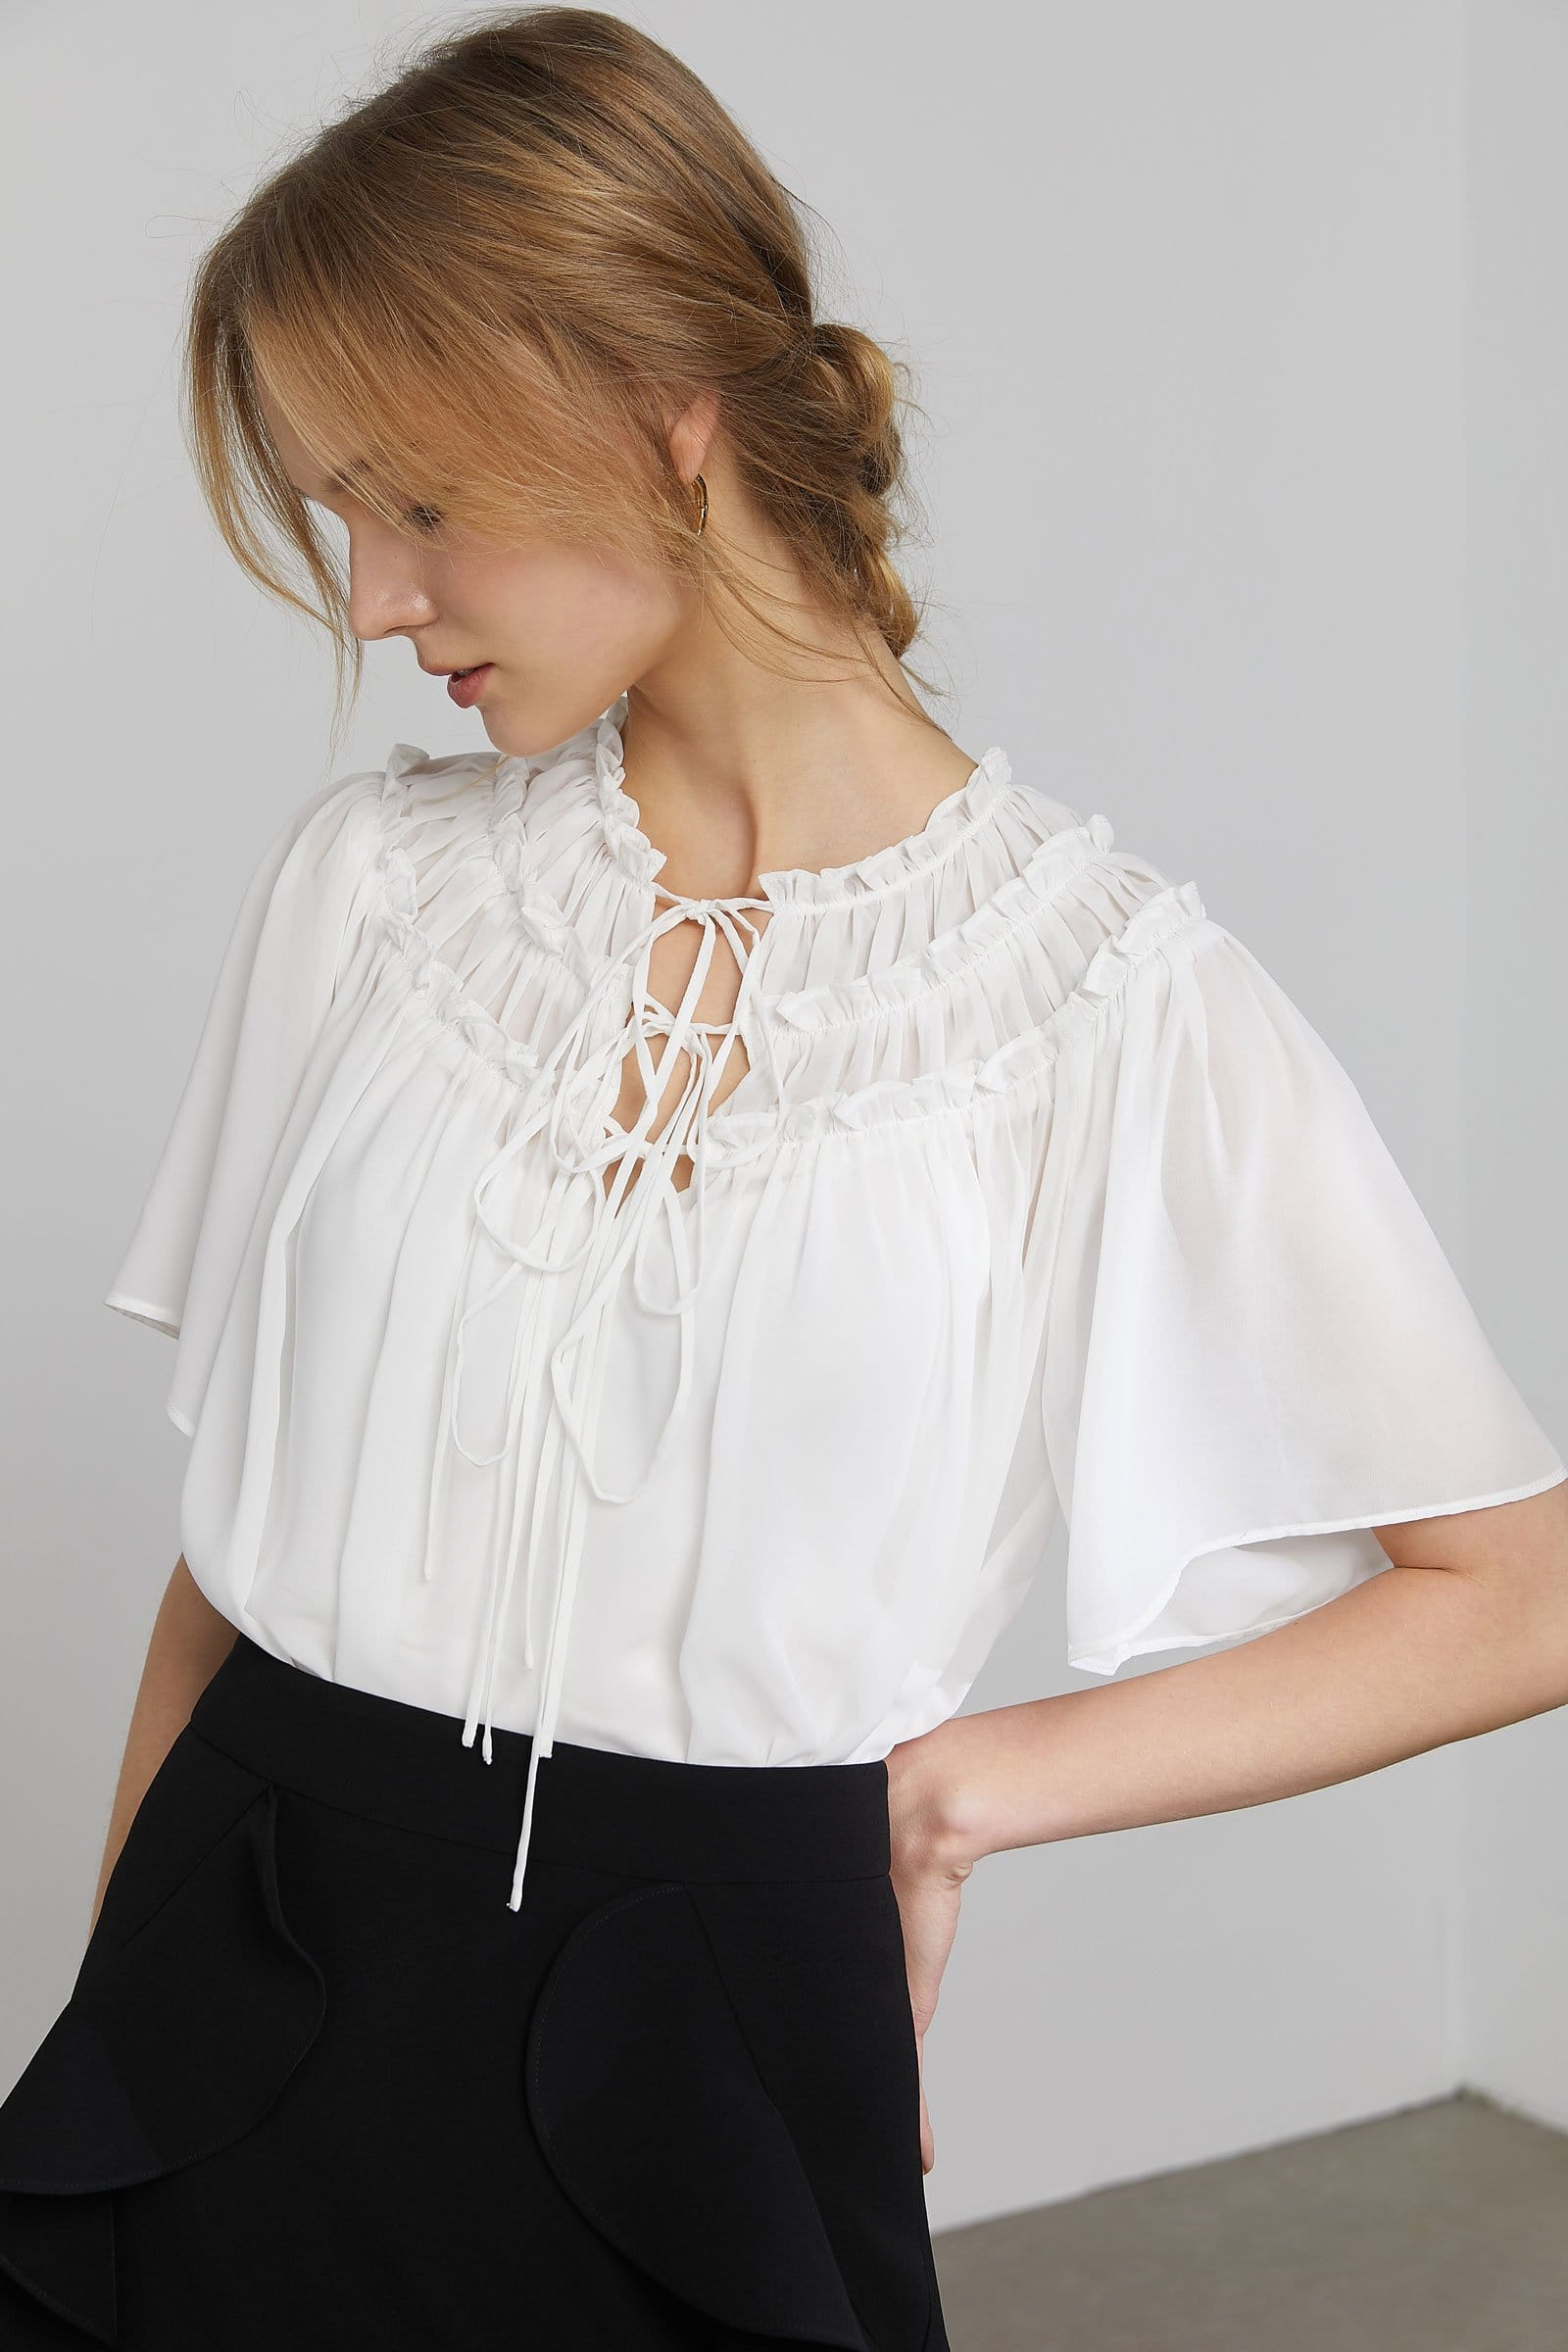 Alicia White Spanish Blouse